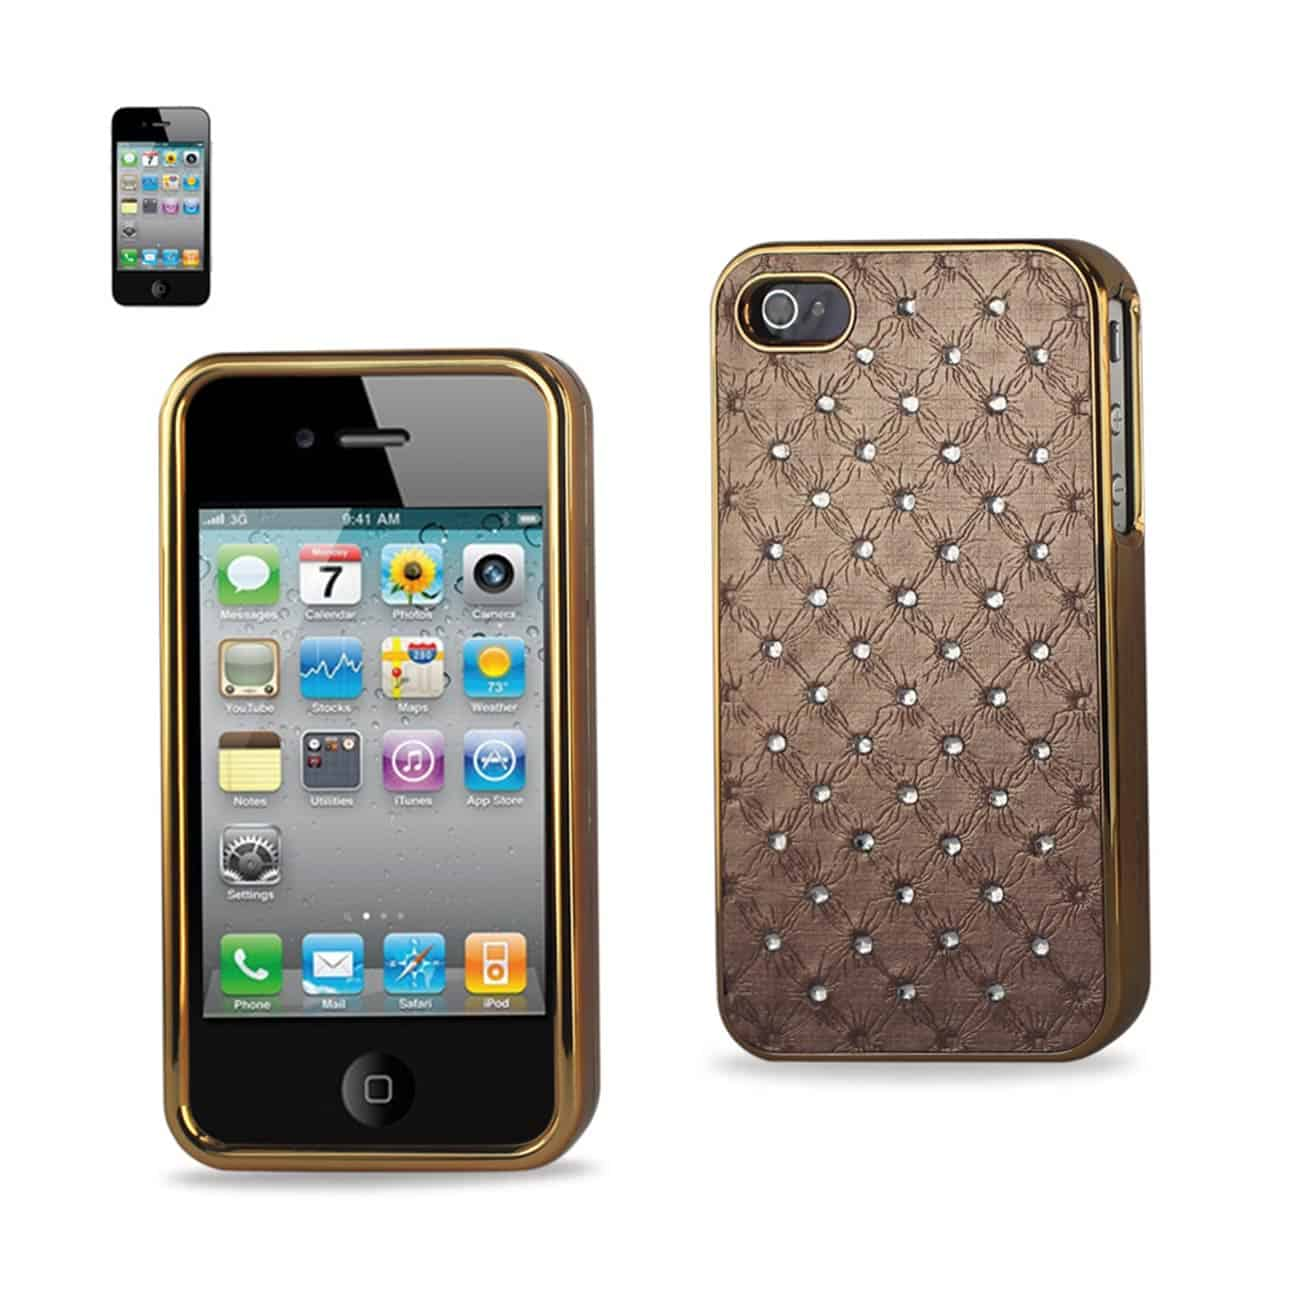 IPHONE 4G JEWELRY DIAMOND STUDS CASE IN BEIGE